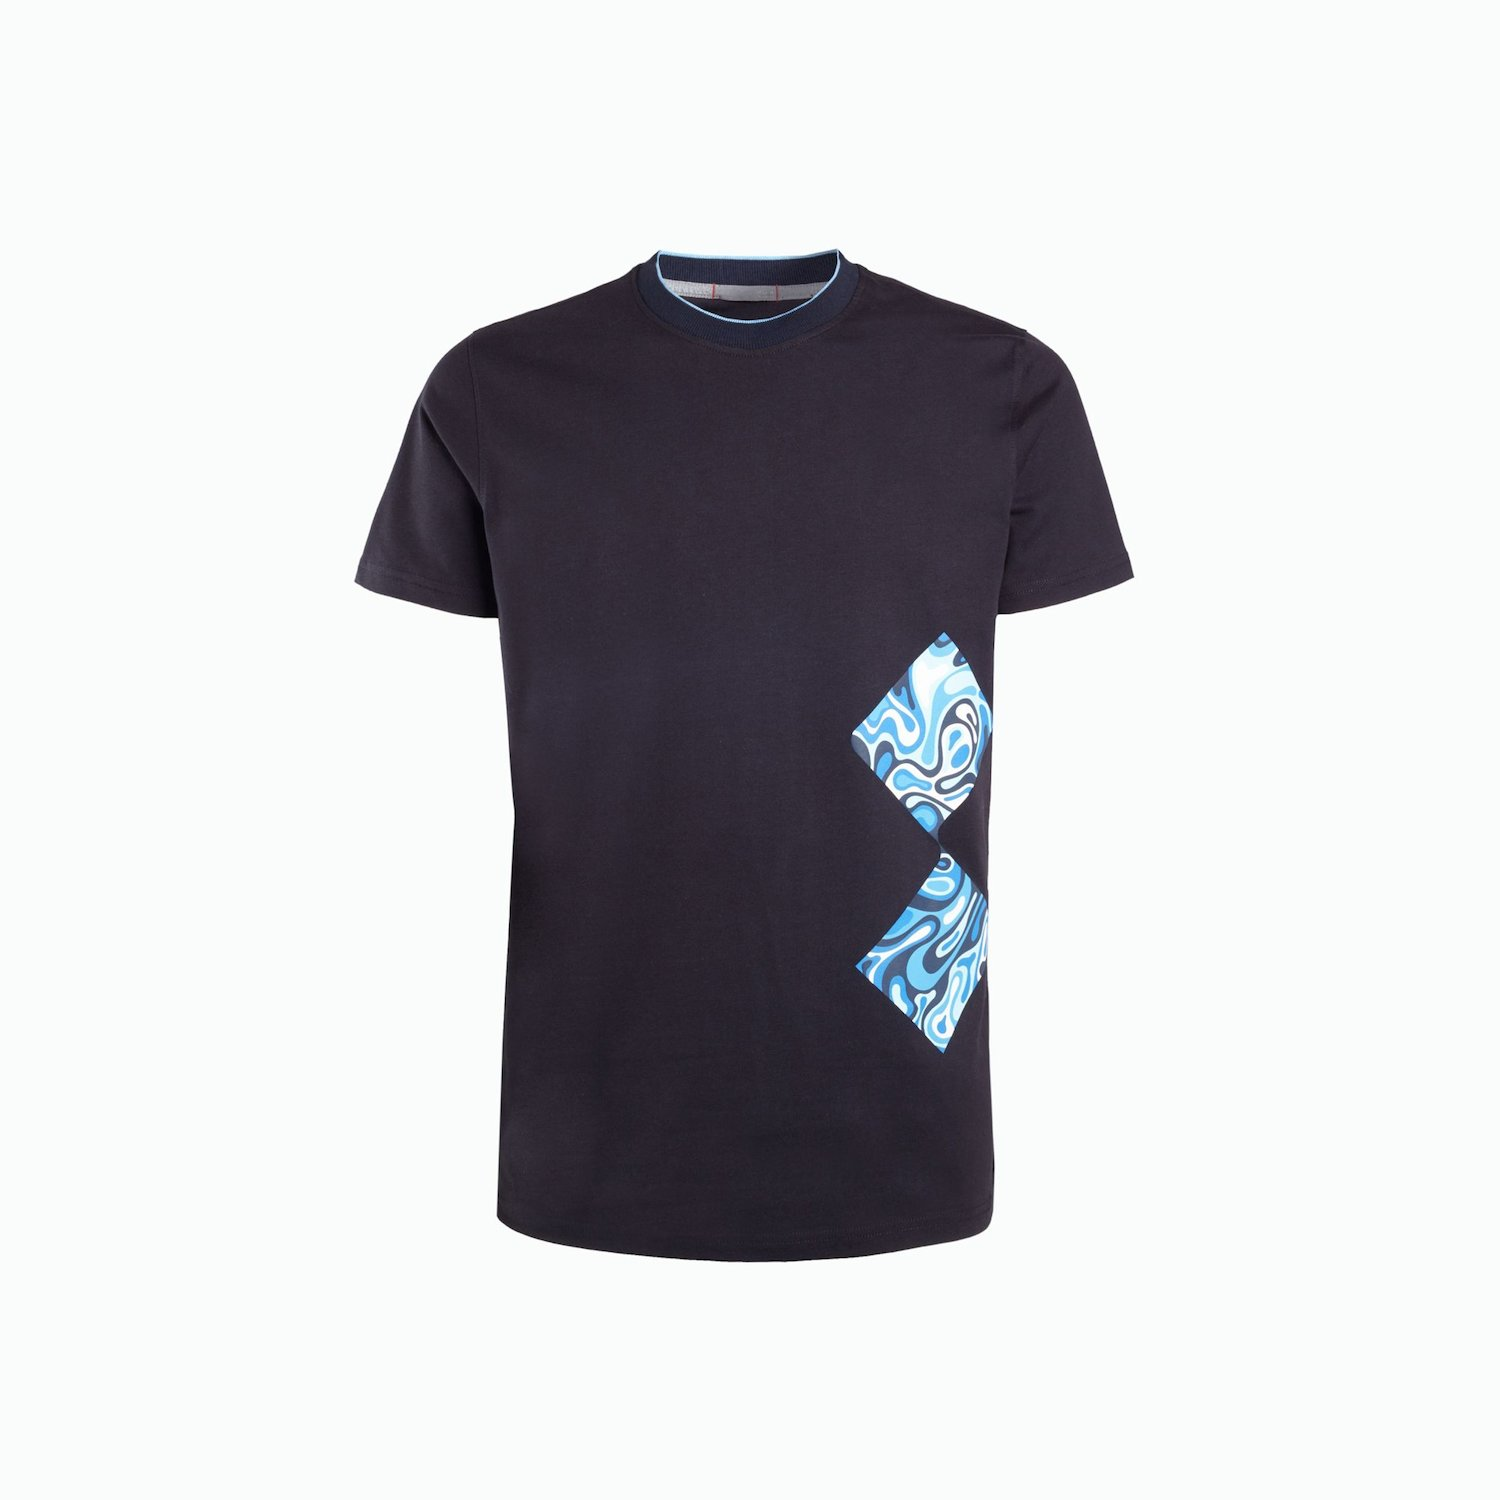 T-SHIRT A216 - Marinenblau